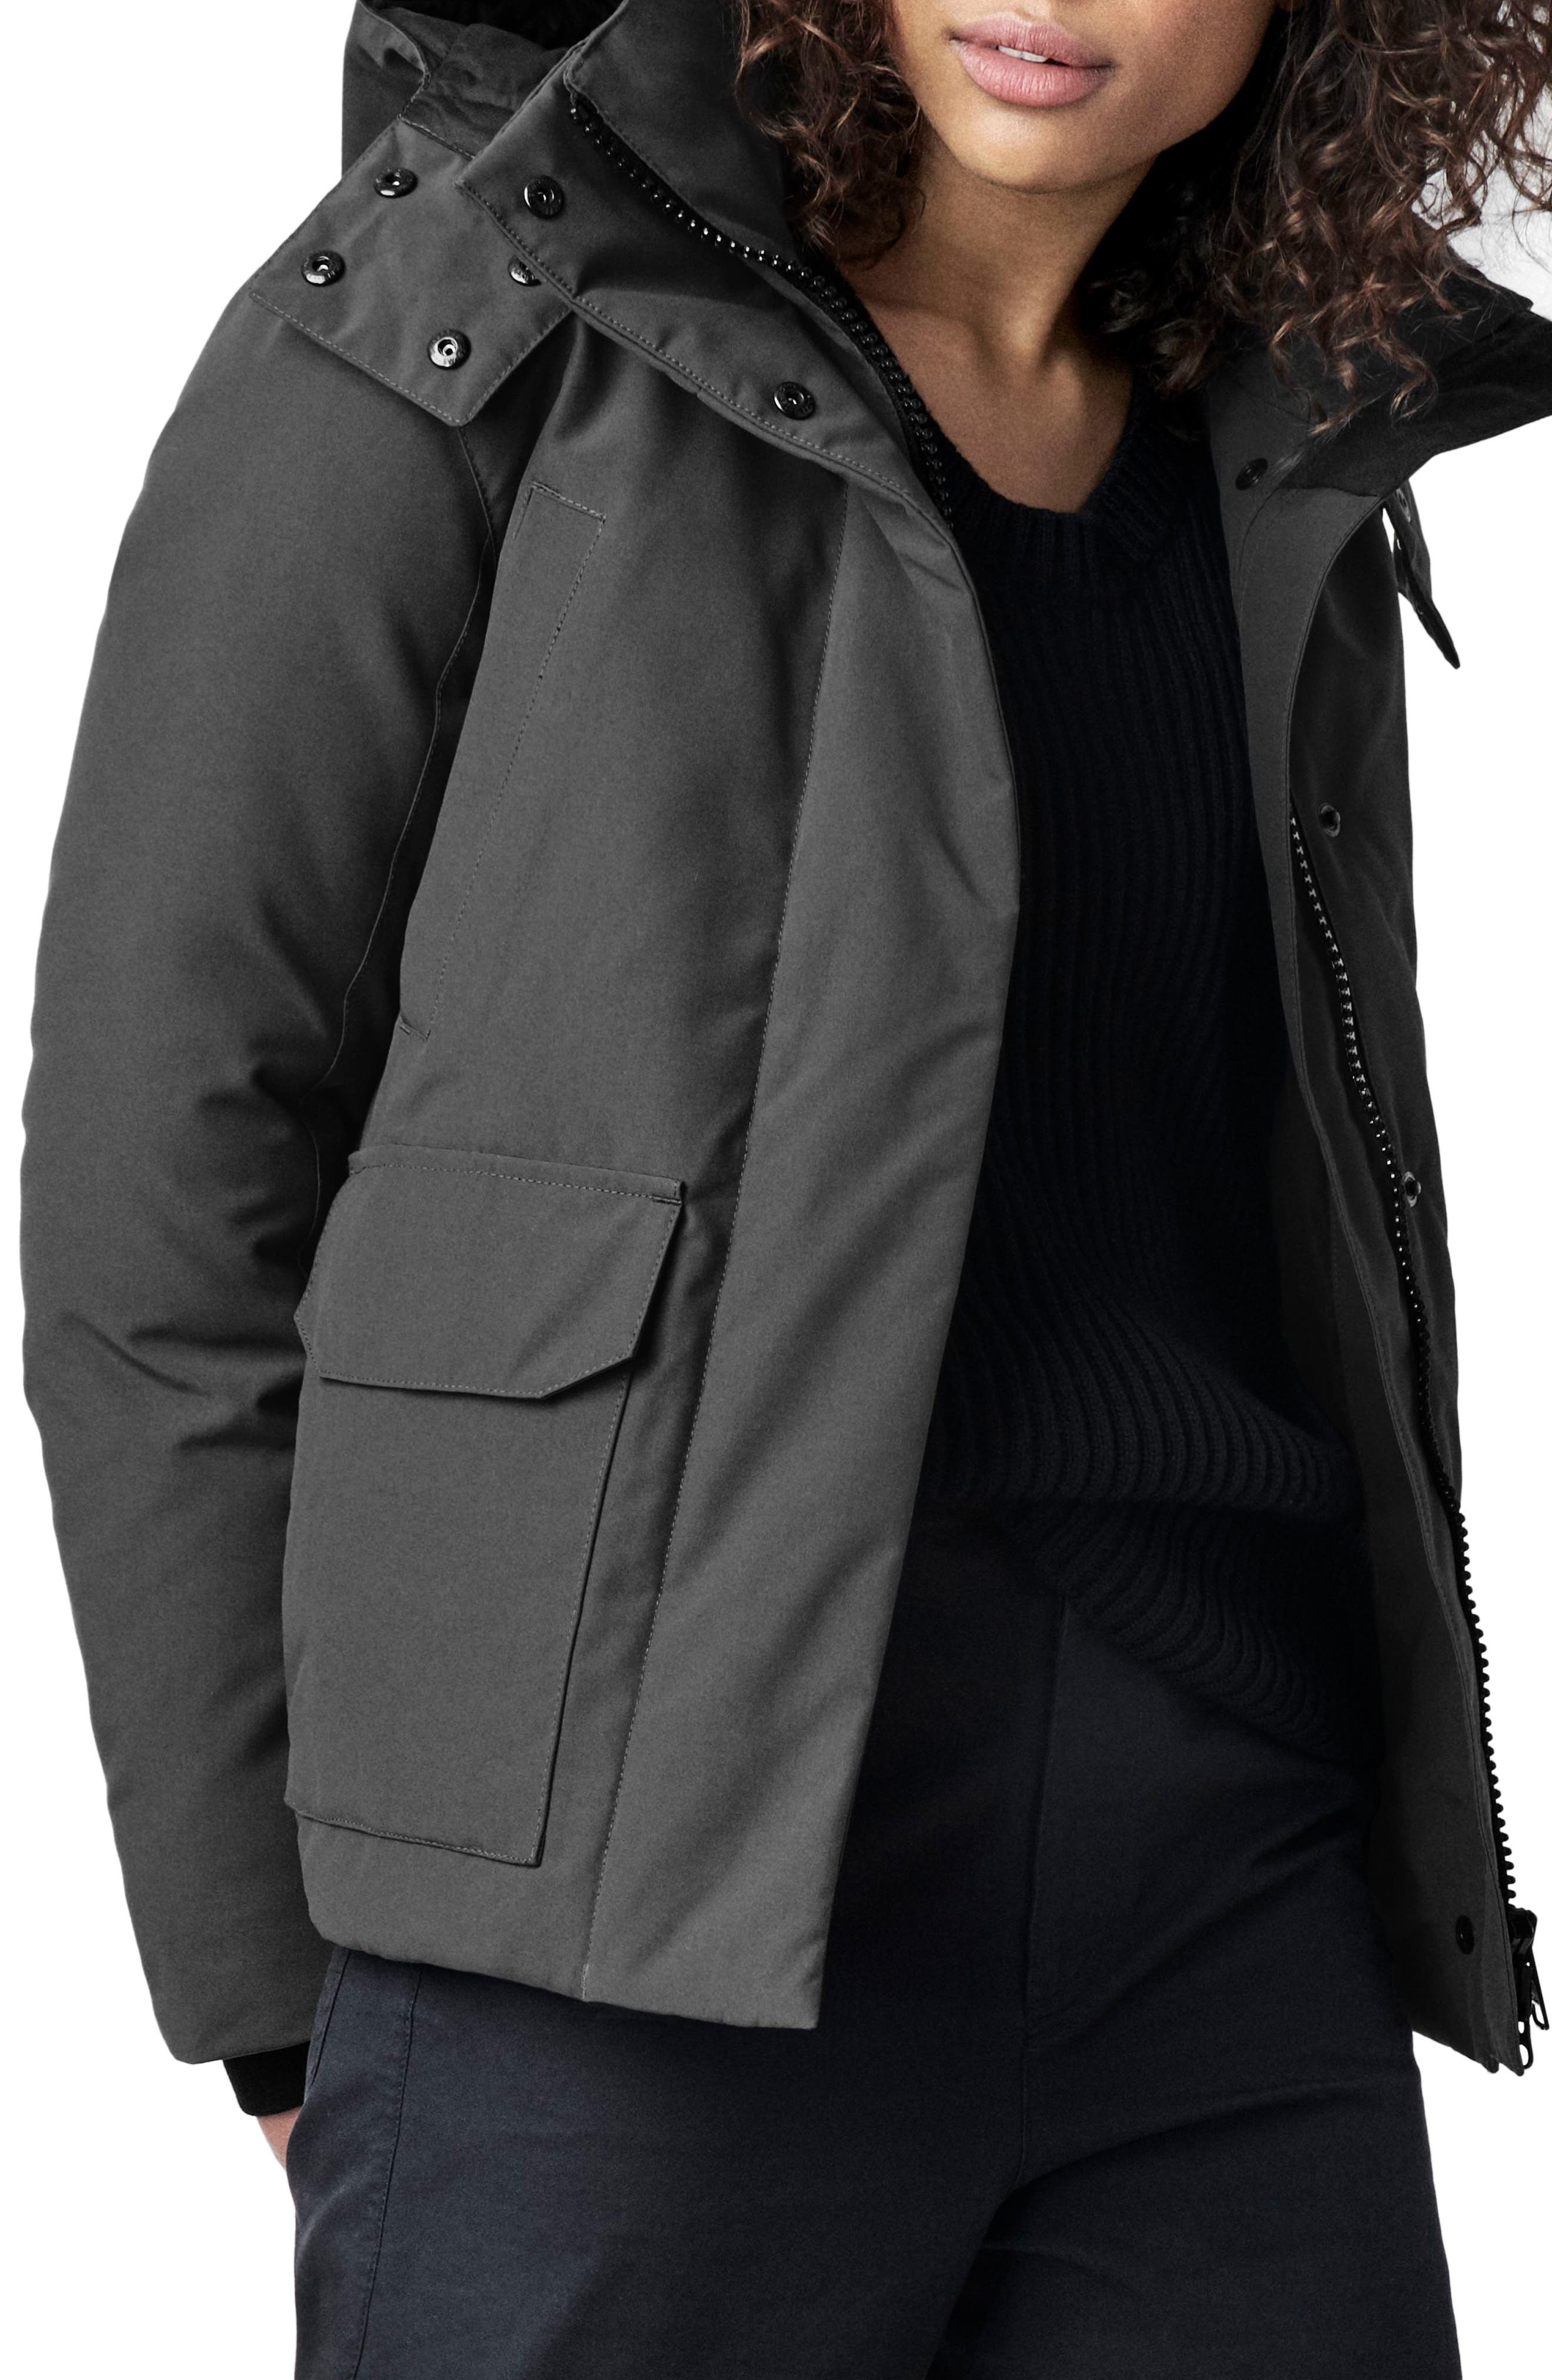 CANADA GOOSE, Blakely Water Resistant 625 Fill Power Down Parka, Main thumbnail 1, color, GRAPHITE